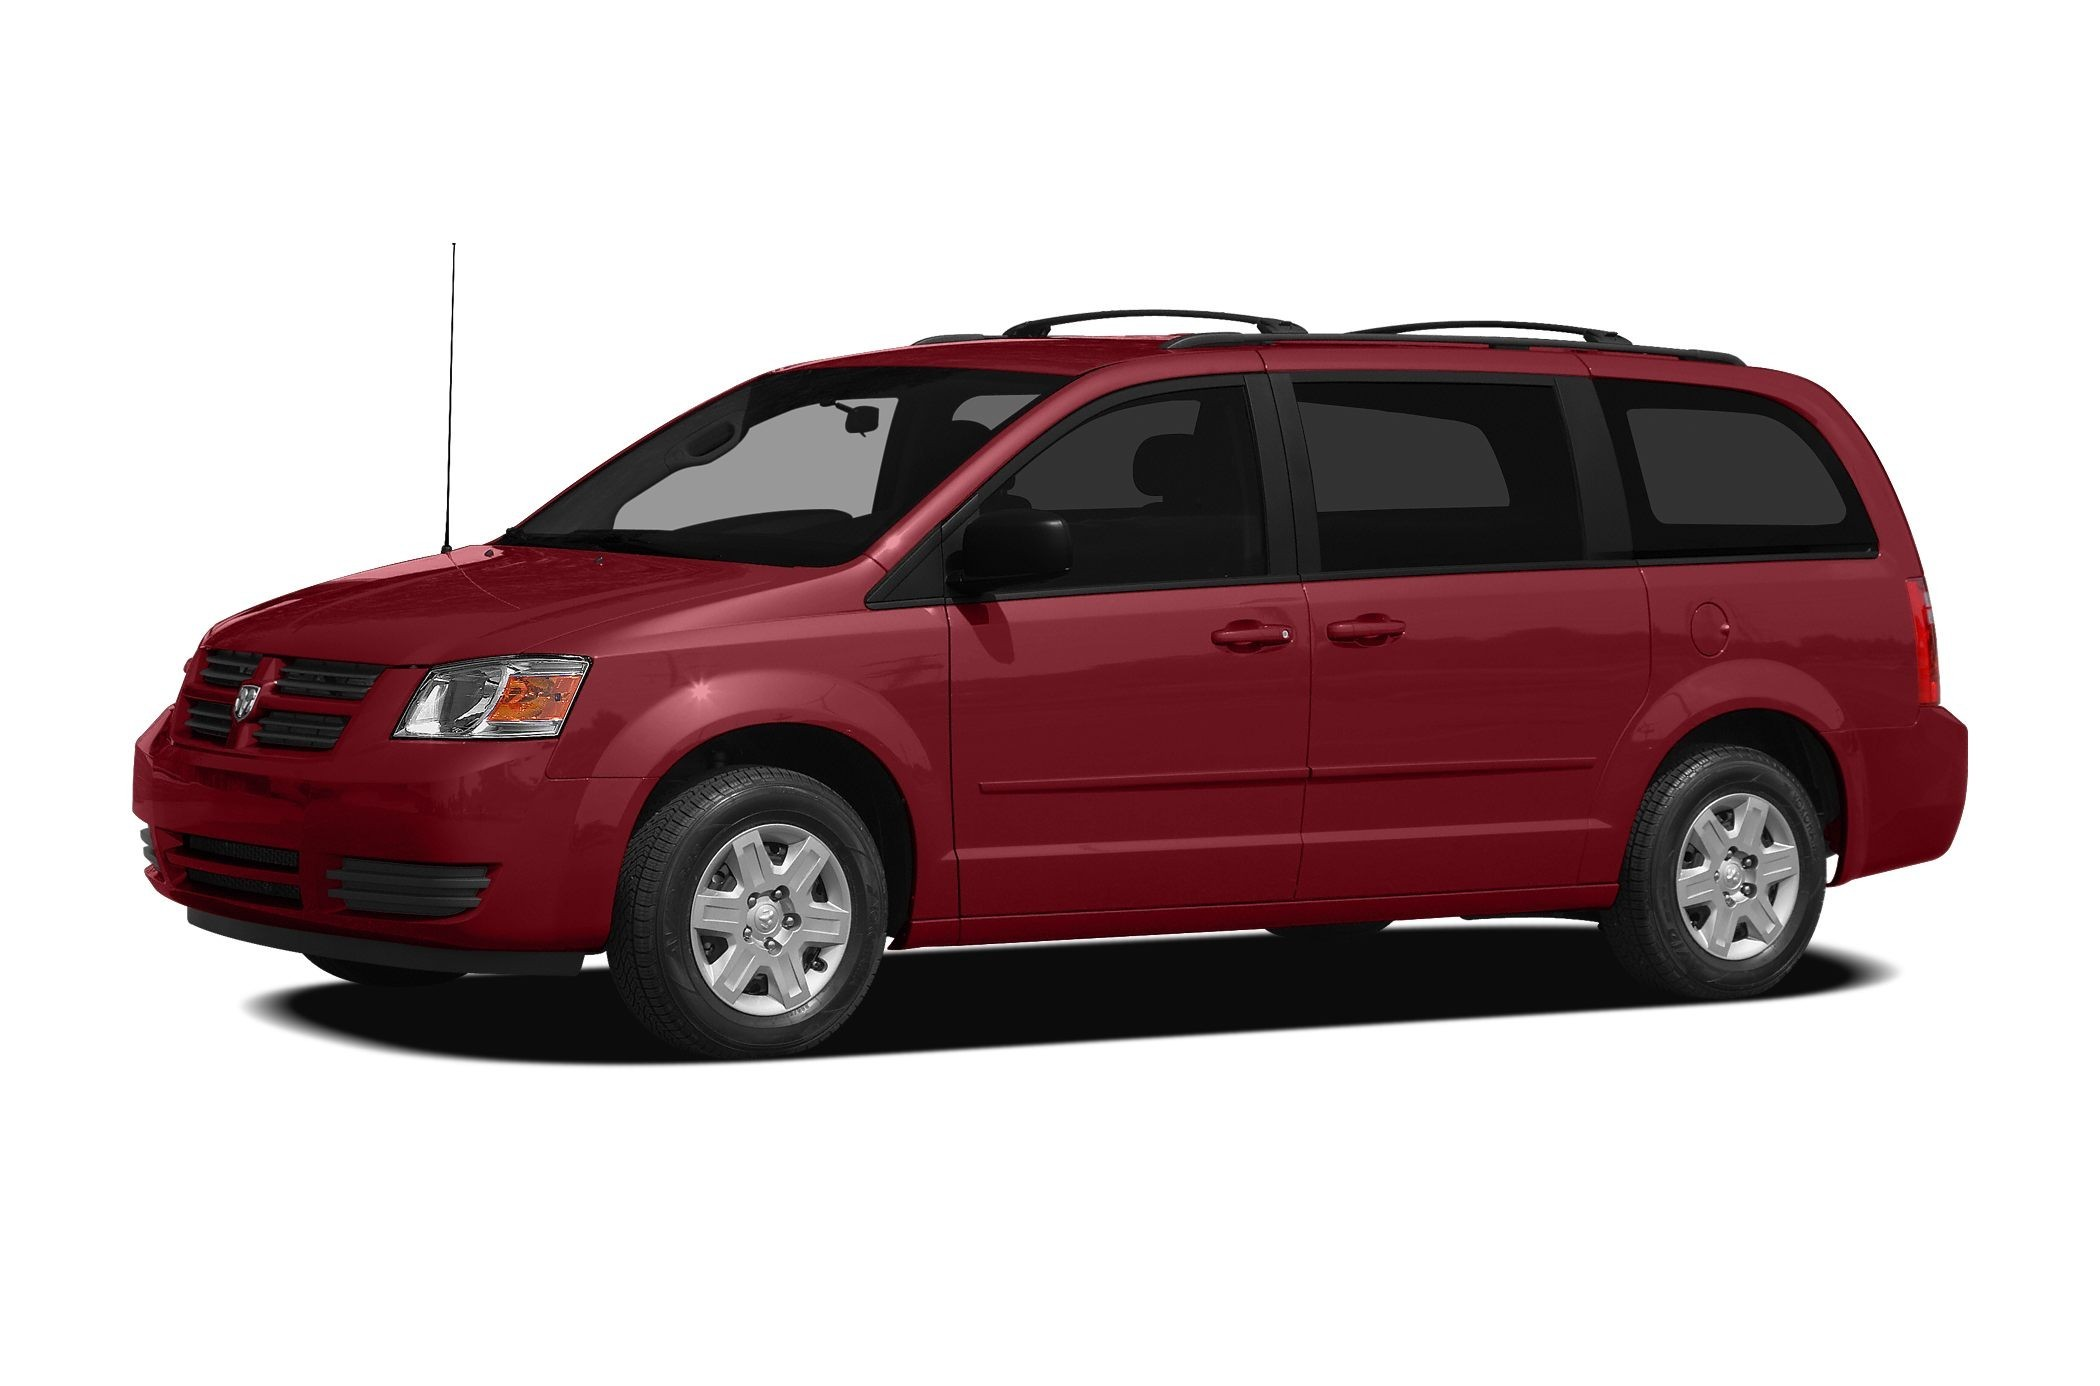 Dodge Caravan Engine Diagram 2010 Dodge Caravan Engine Diagram 2010 Dodge Grand Caravan Of Dodge Caravan Engine Diagram